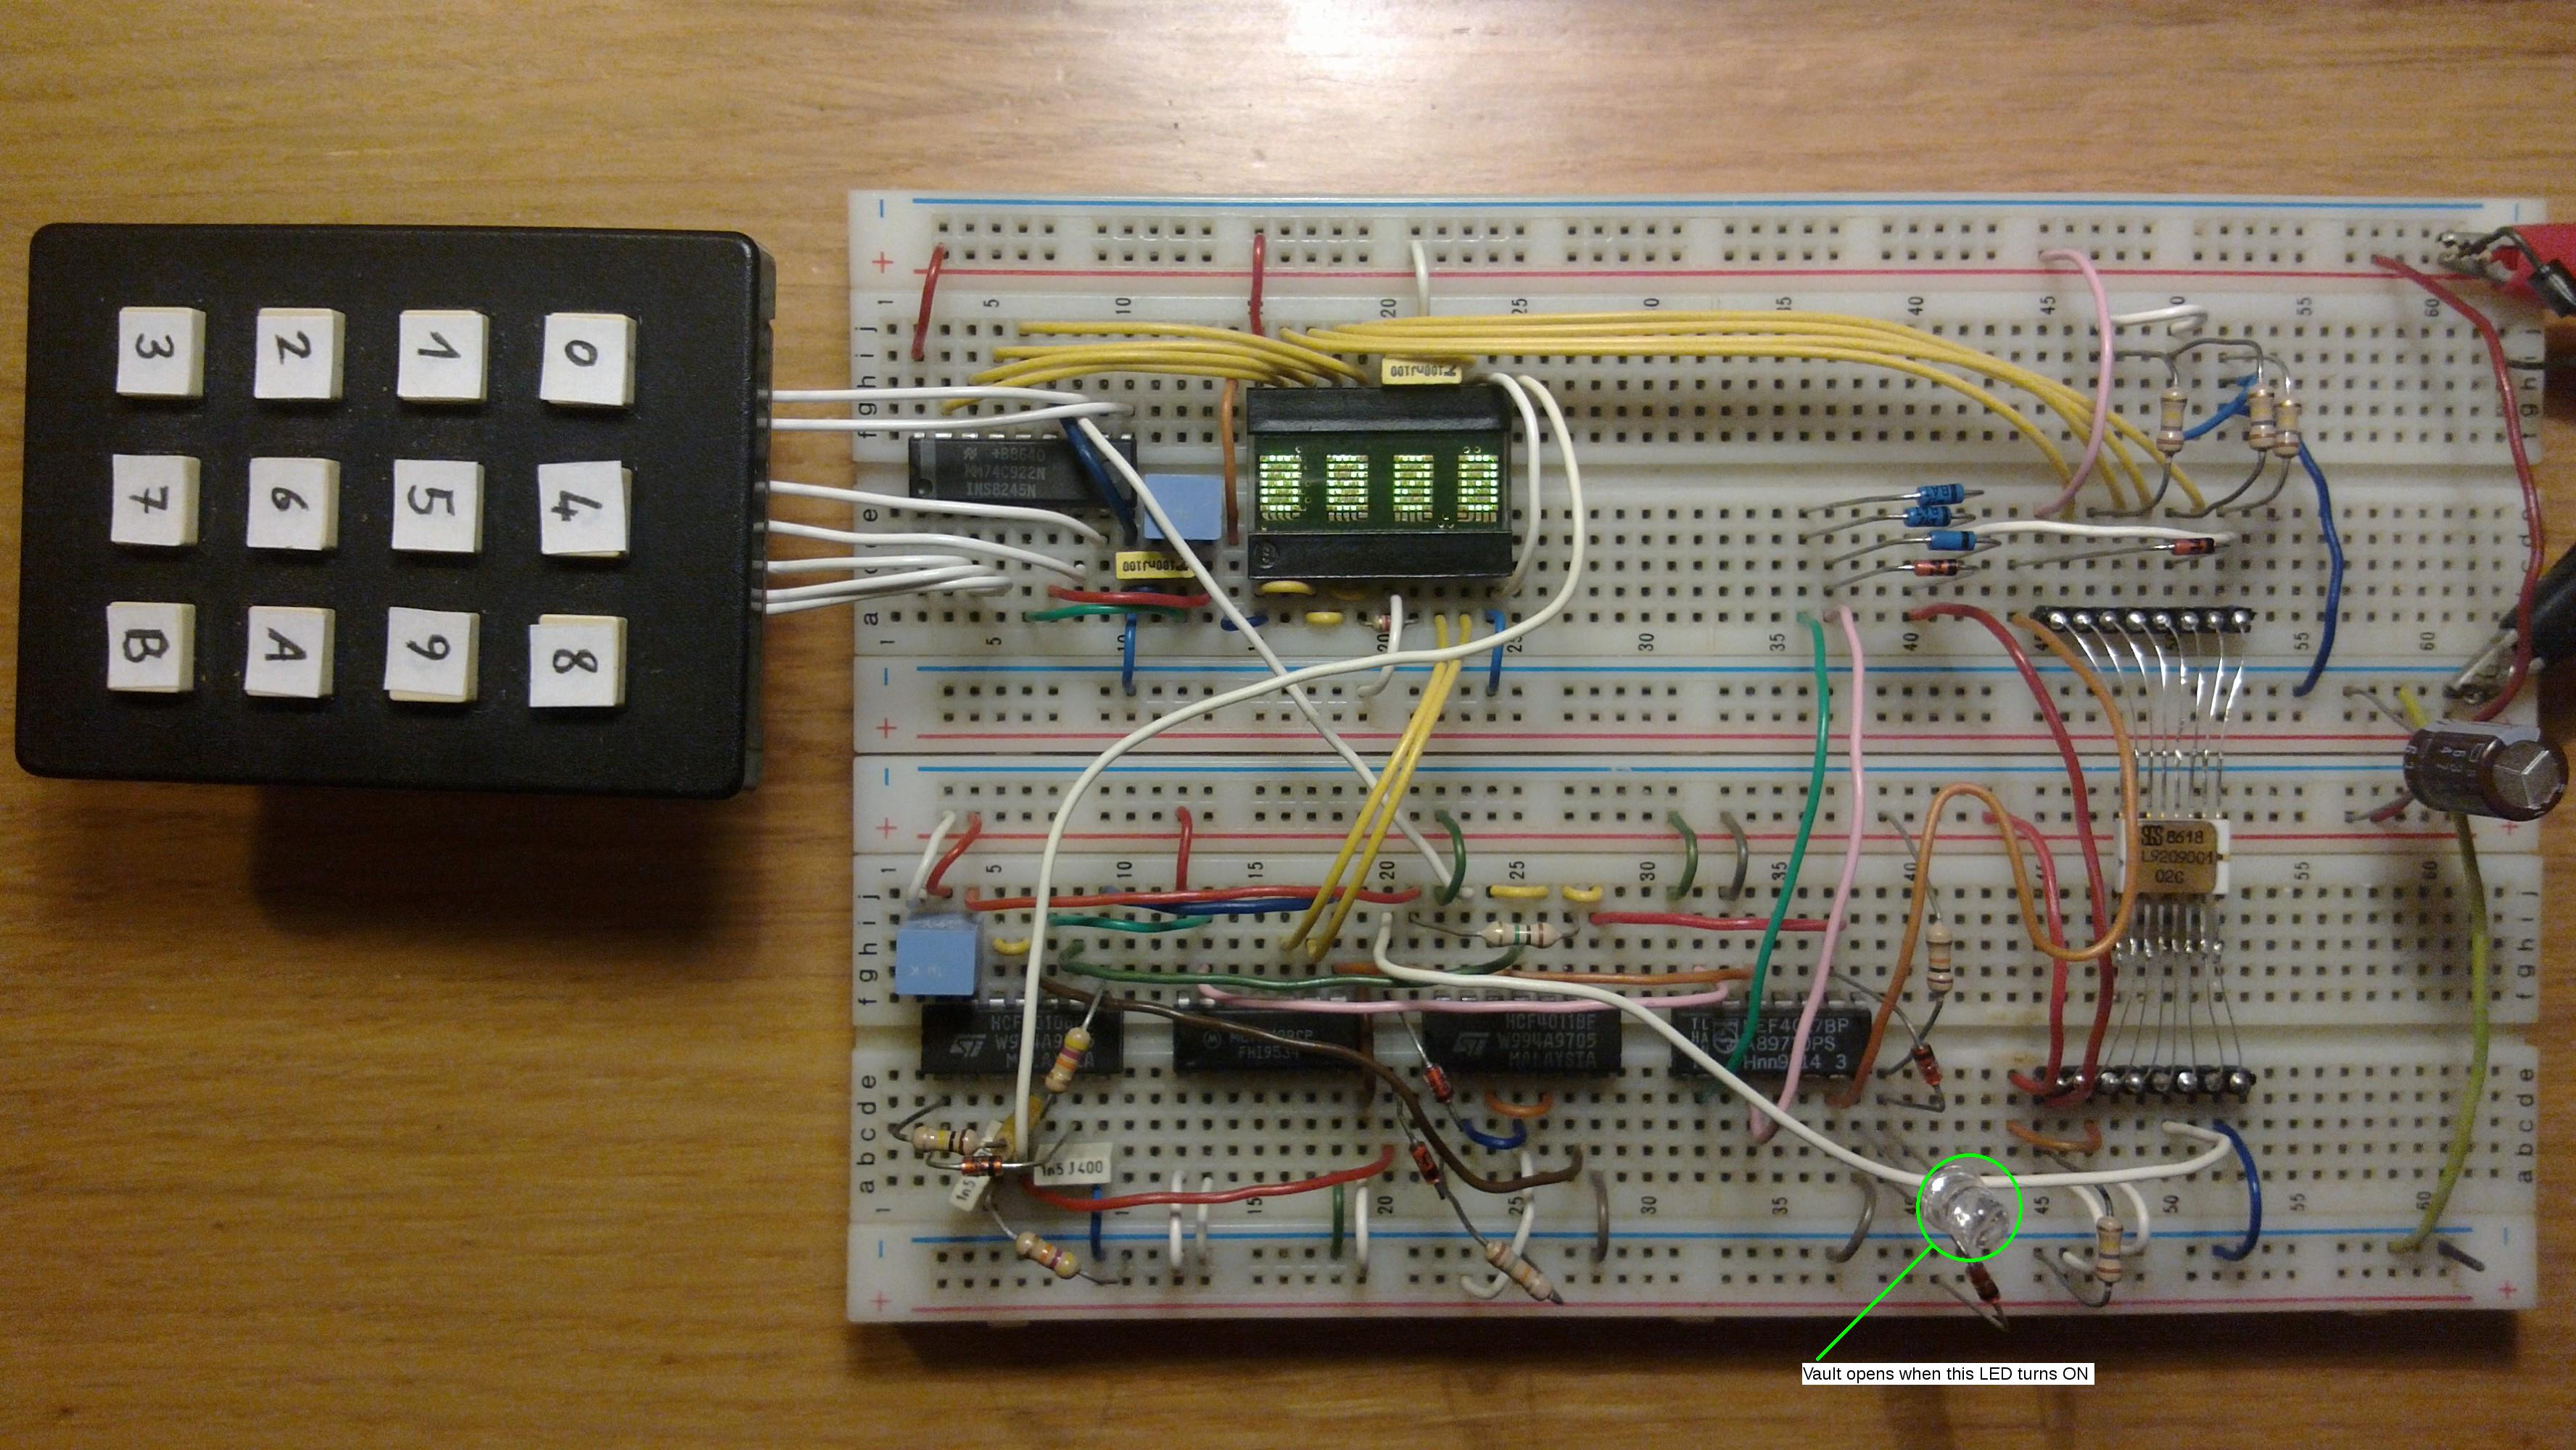 Polictf 2015 Lightning Integrated Circuitjpg The Files For Challenge Are Two Images A Photo Of Breadboard Full Components And Showing Placement Circuits On